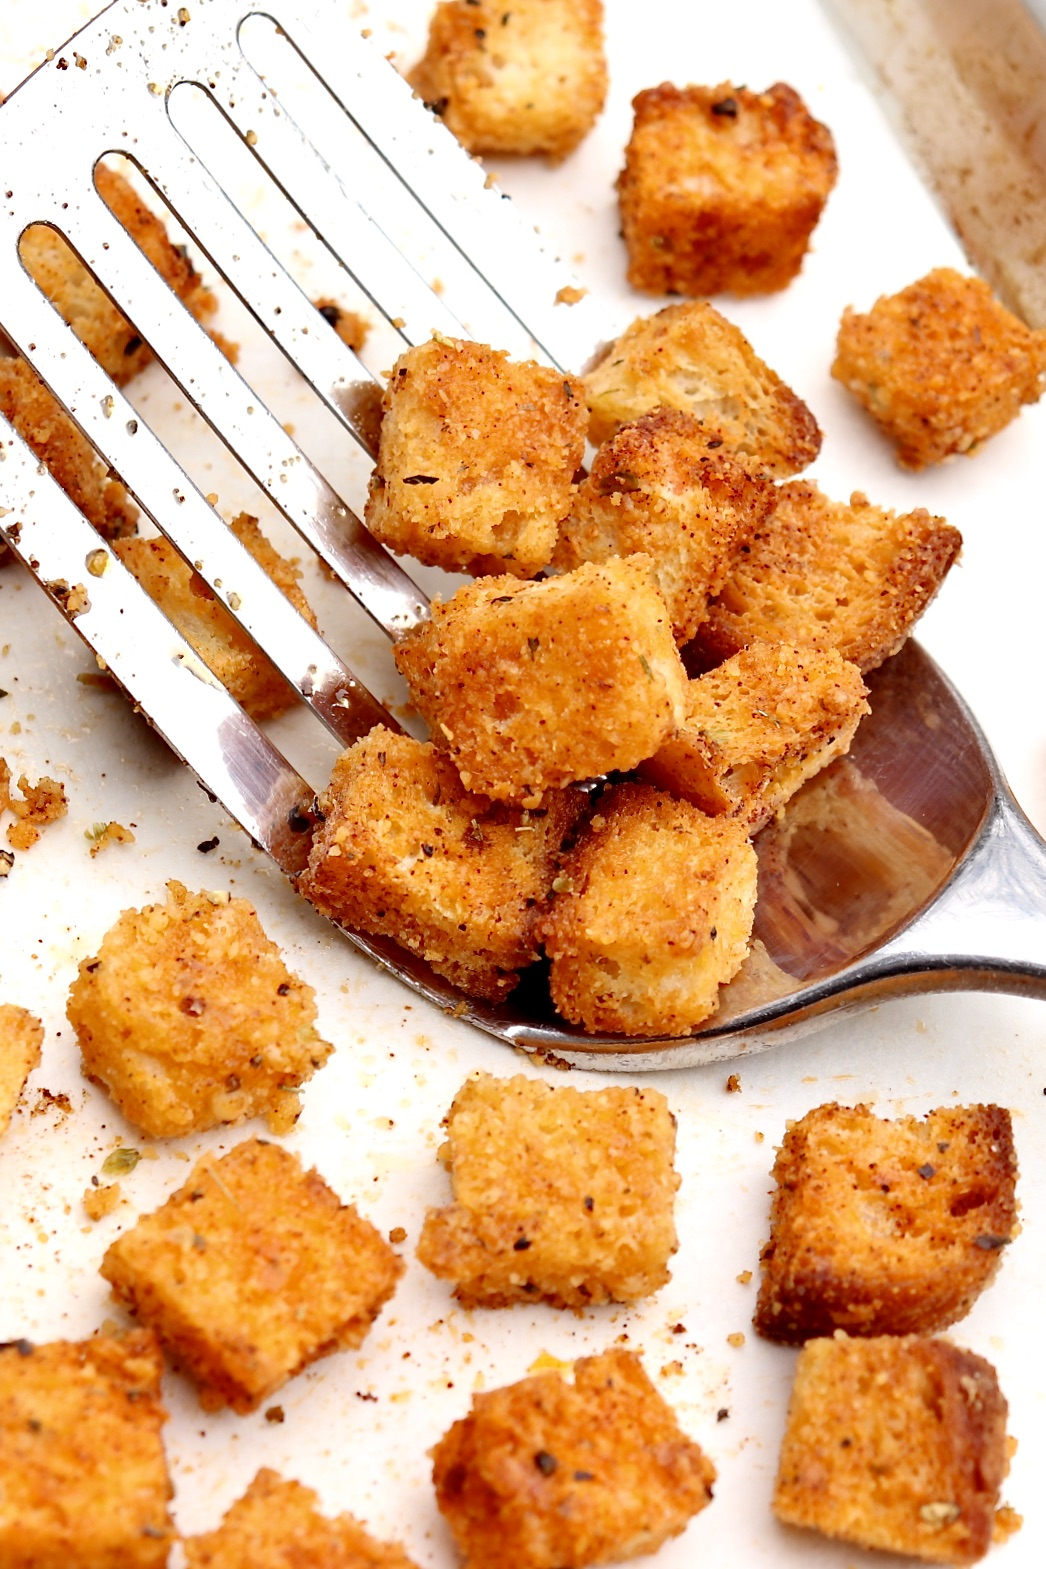 A simple mix of herbs, spices, olive oil and Parmesan makes snack-worthy croutons that add crisp crunch to soups, salads, casseroles and more. The flavor-packed bites offer a practical way to make use of leftover bread, from baguettes to sturdy sandwich bread, with an excellent gluten-free option.